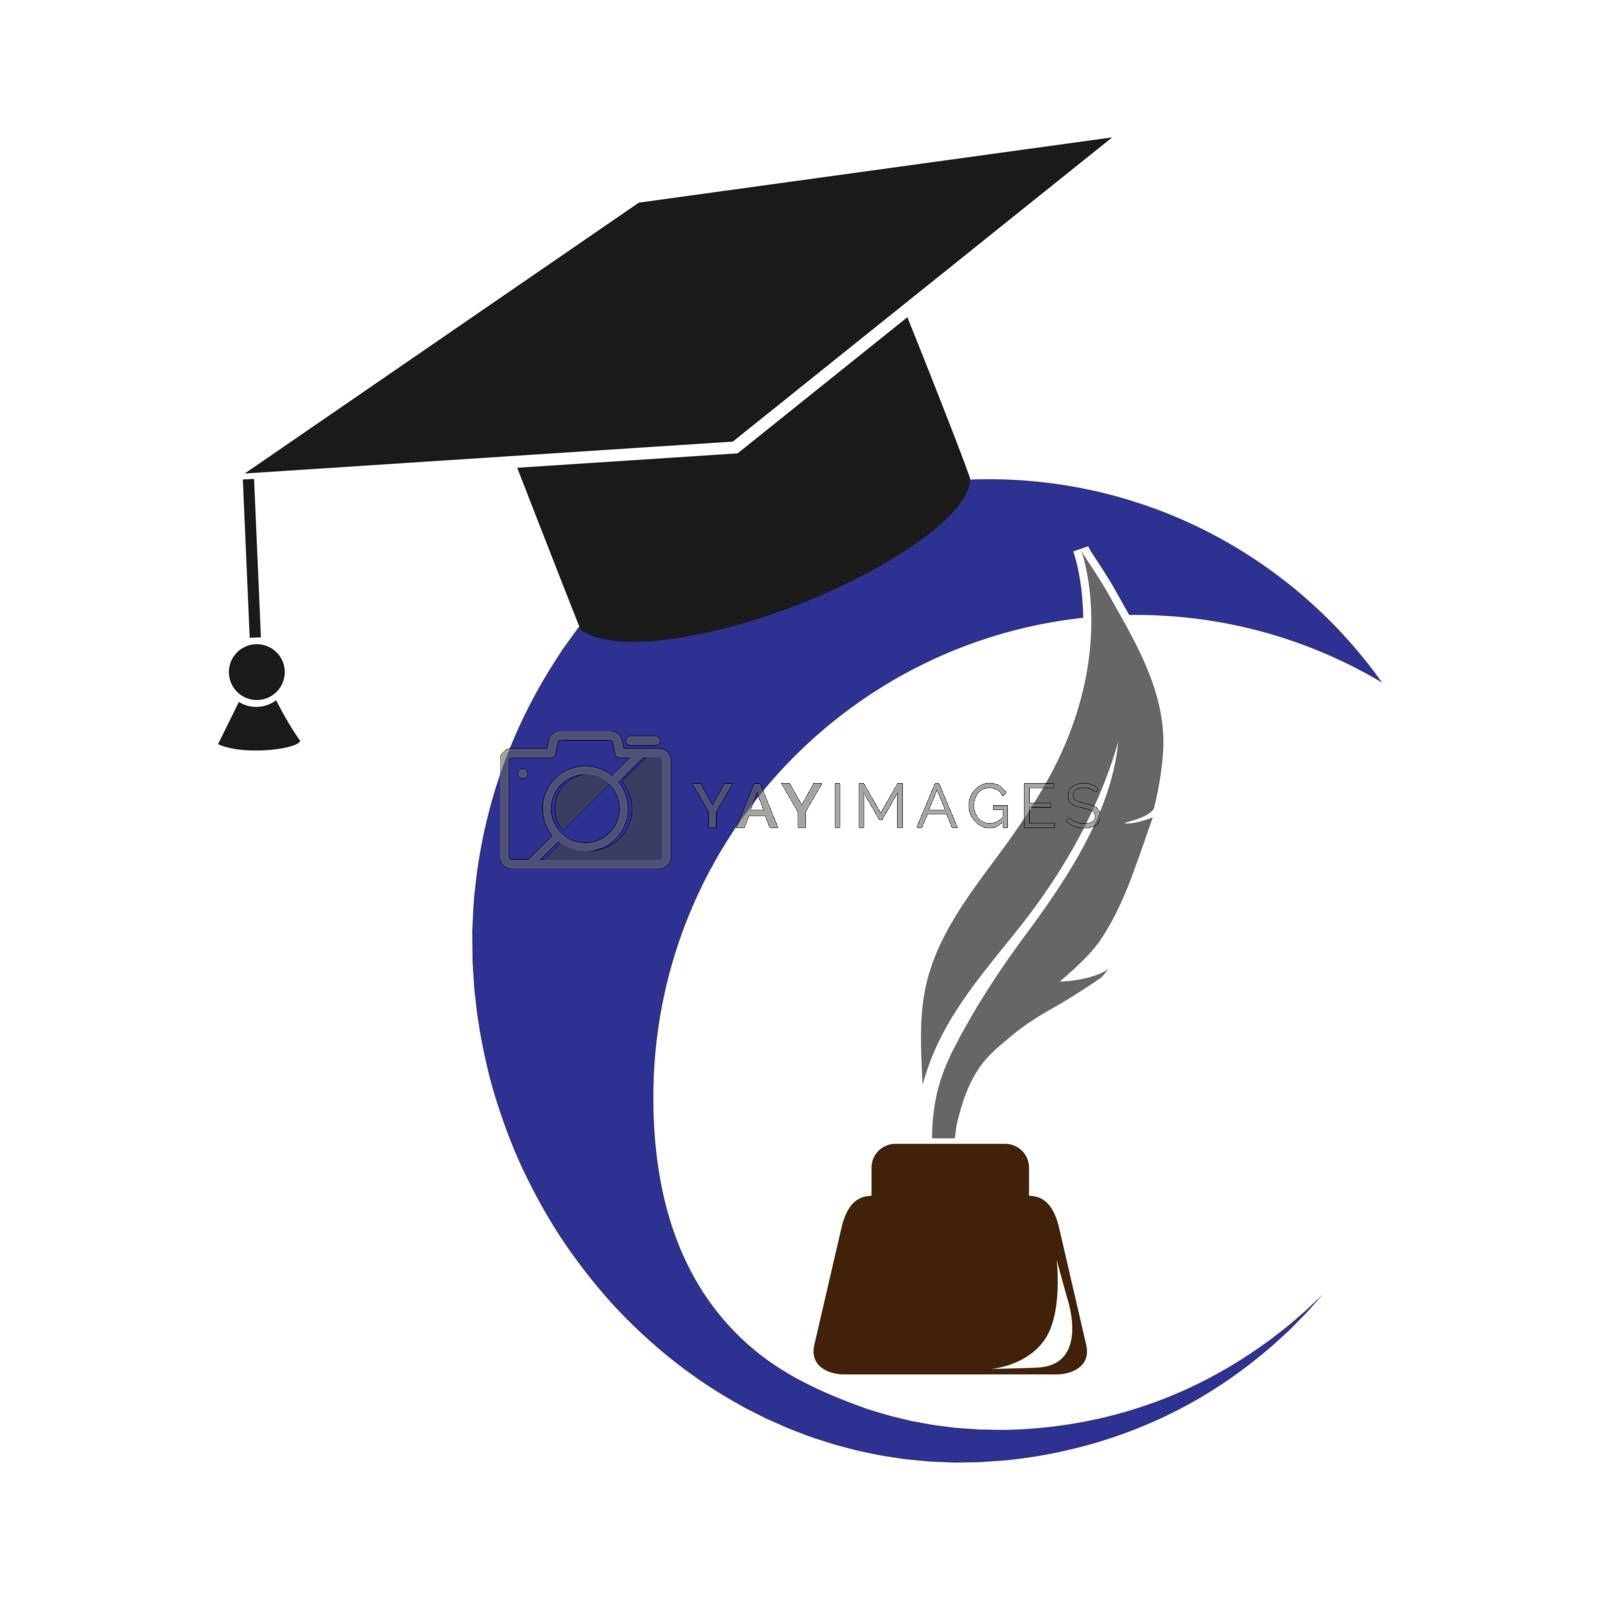 Logo with graduate cap, inkwell and pen, flat design